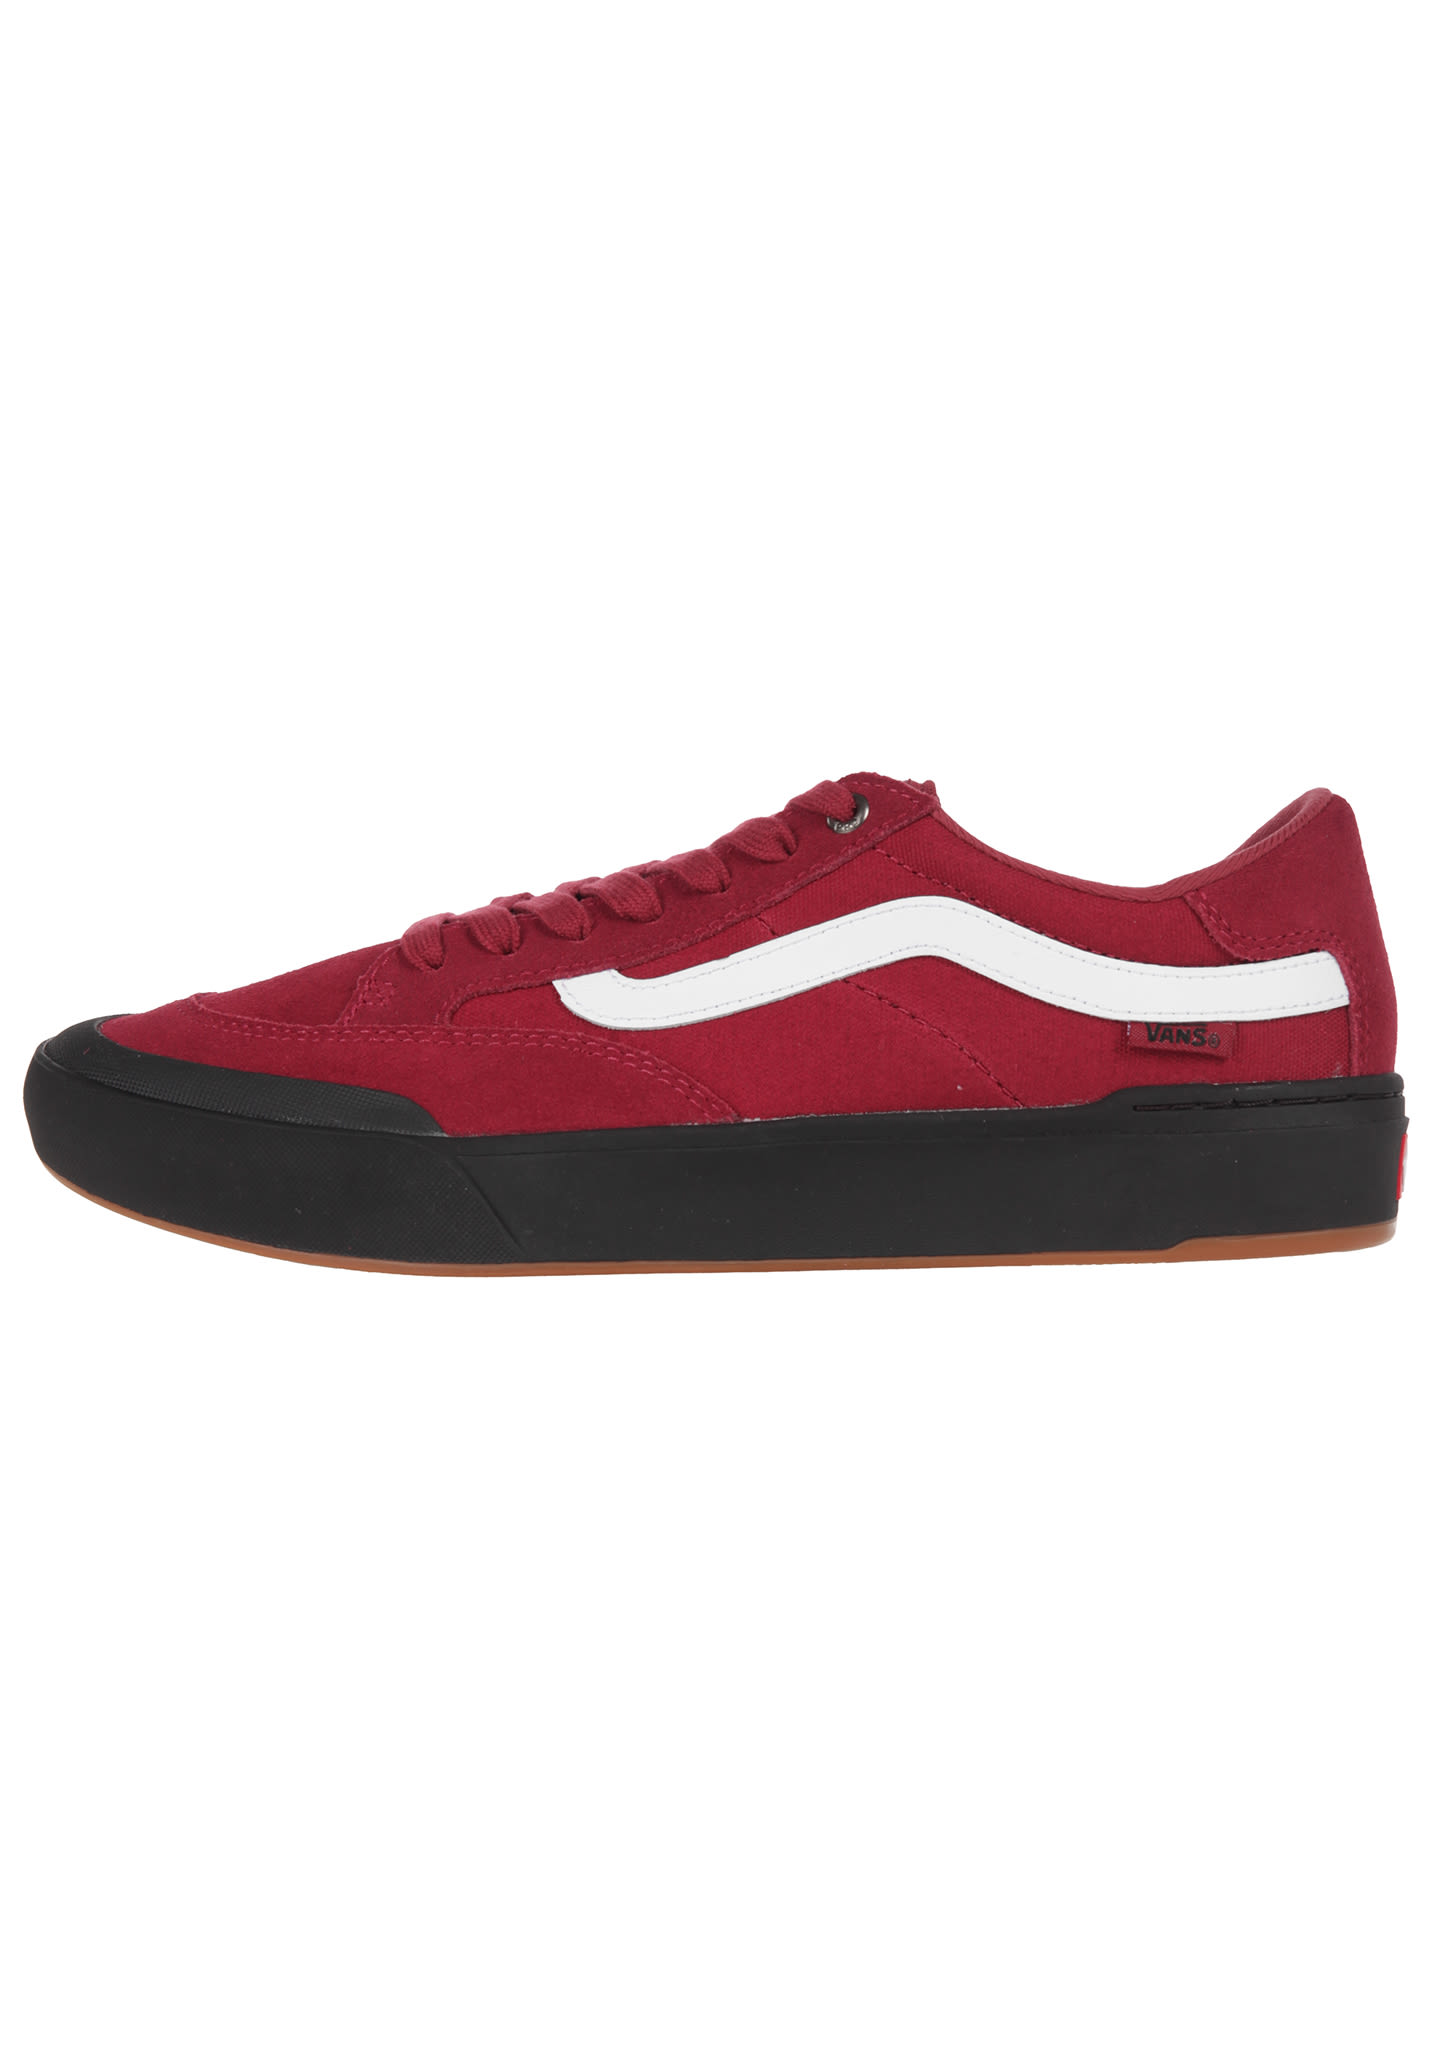 c5a6e2d5b111df Vans Berle Pro - Sneakers for Men - Red - Planet Sports